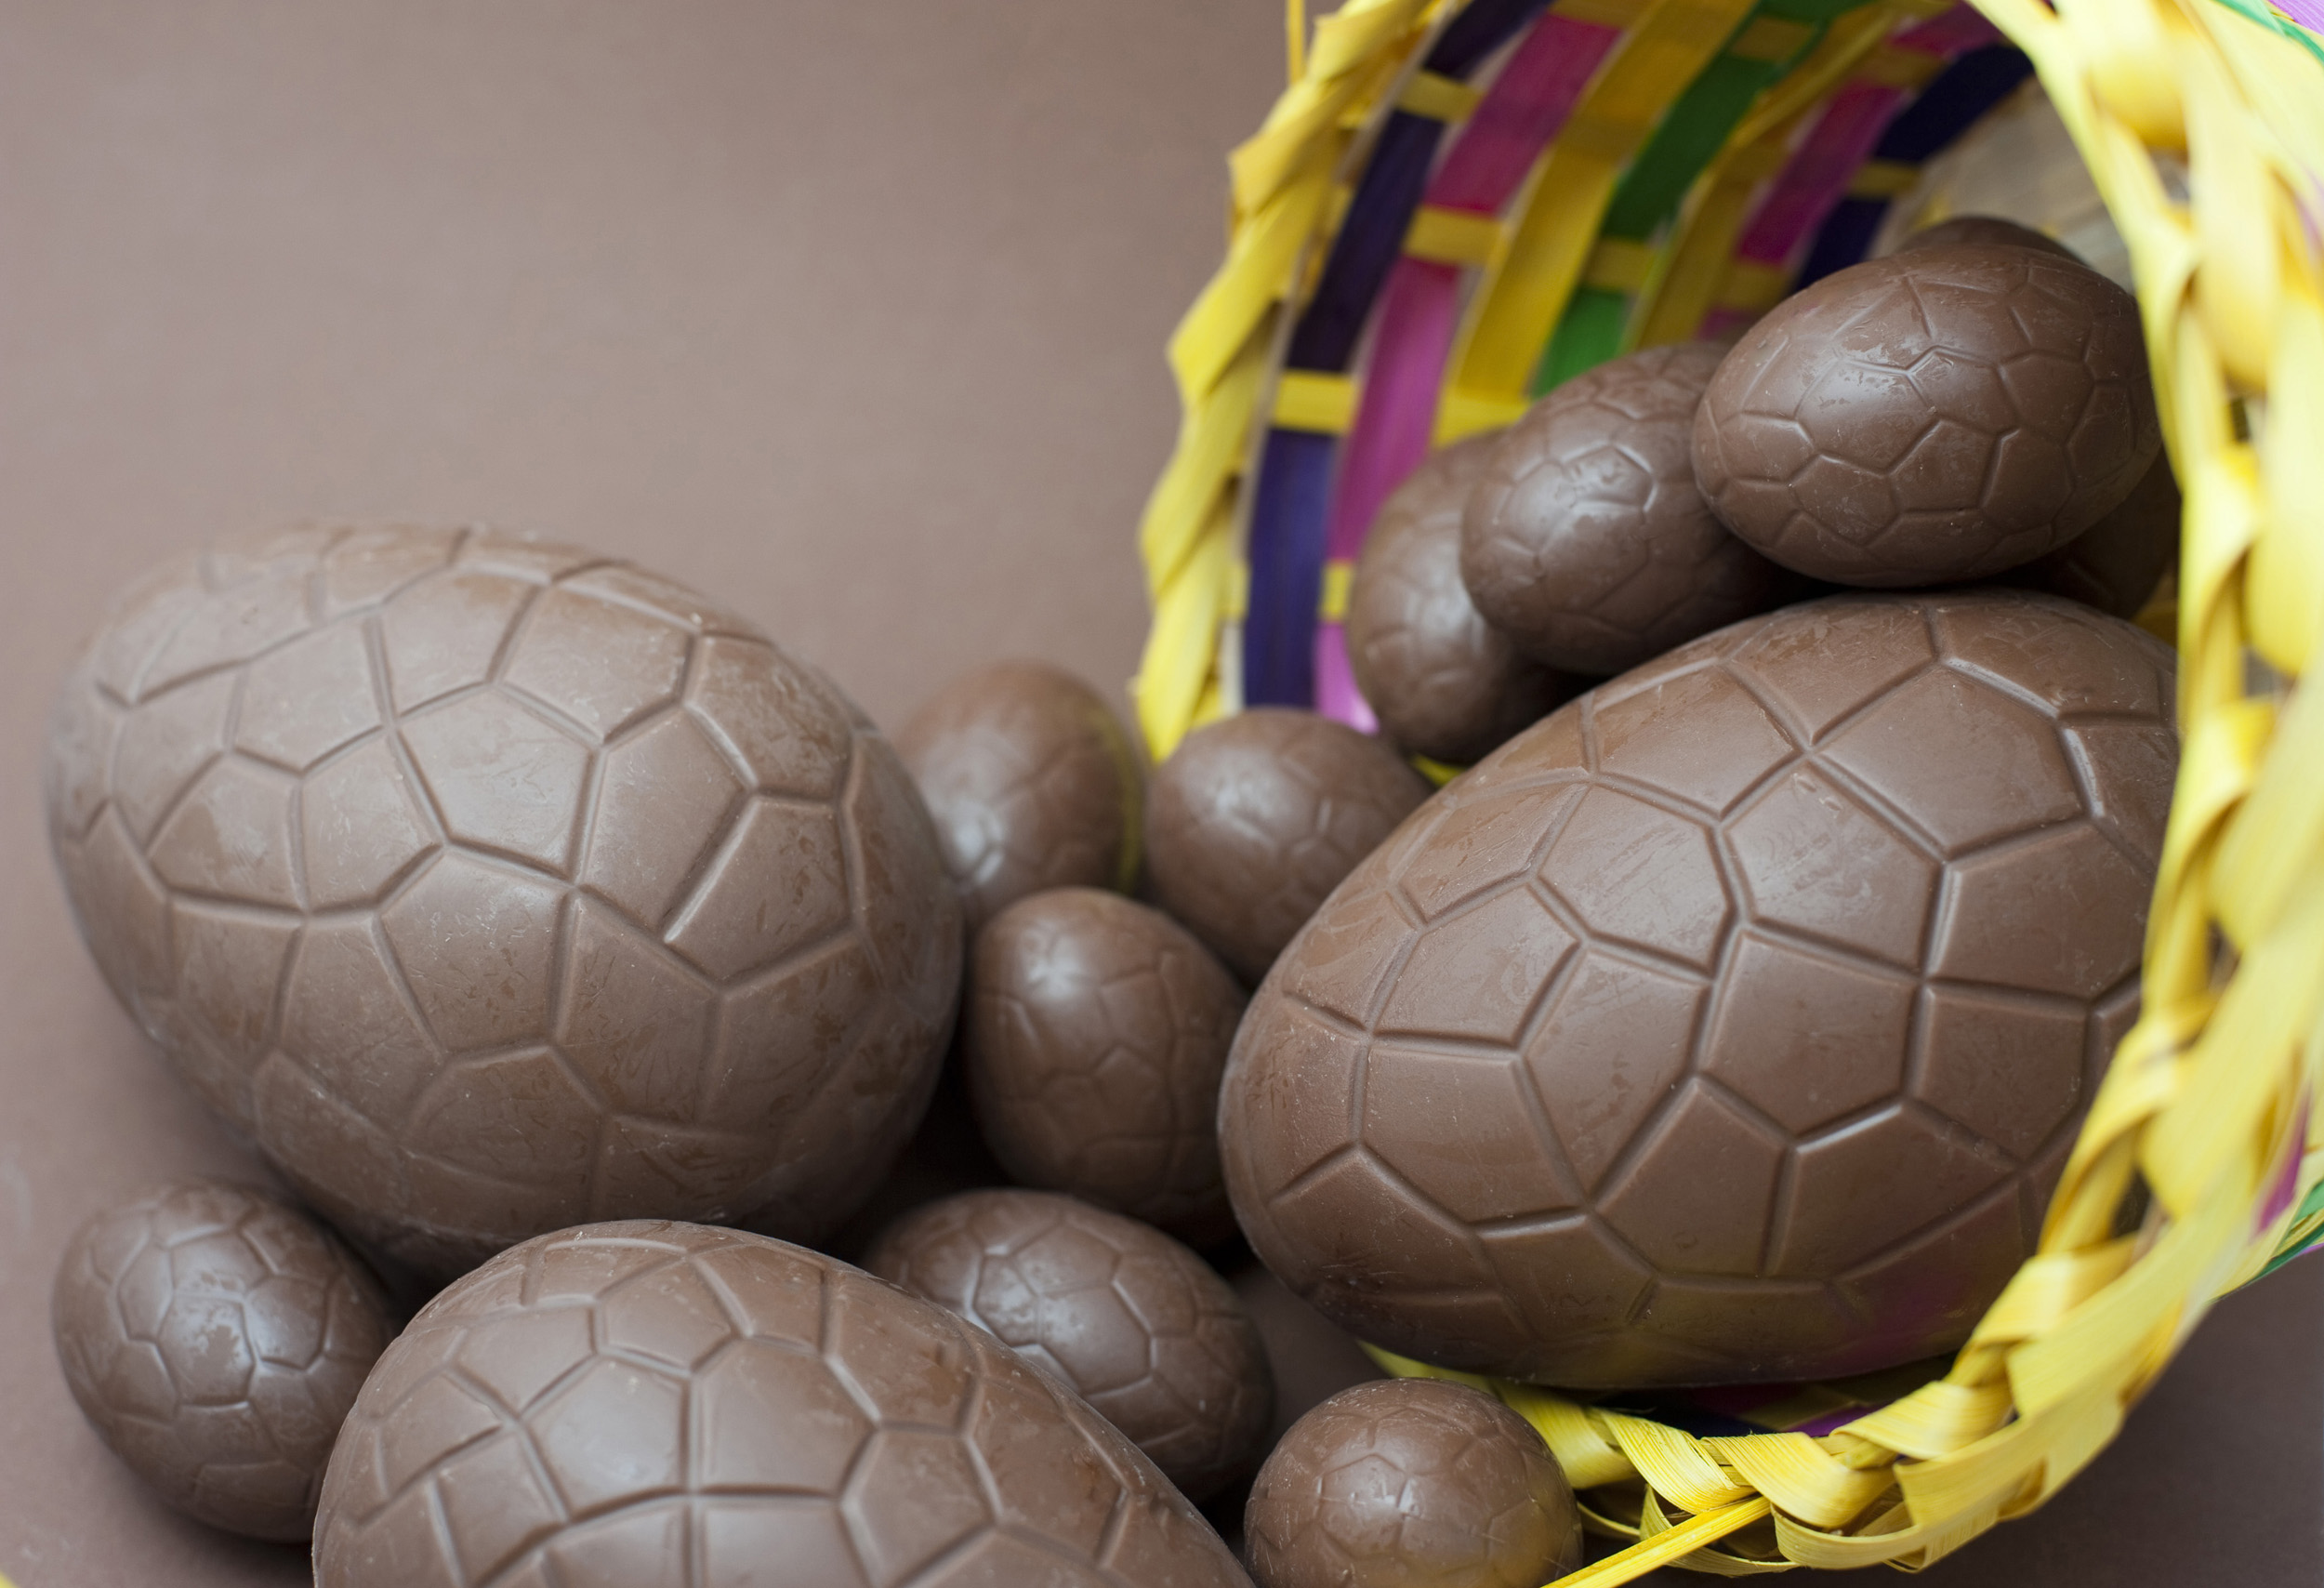 easter_egg_selection.jpg - Easter Egg selection of various sized milk chocolate eggs spilling out of a decorative basket onto a brown background